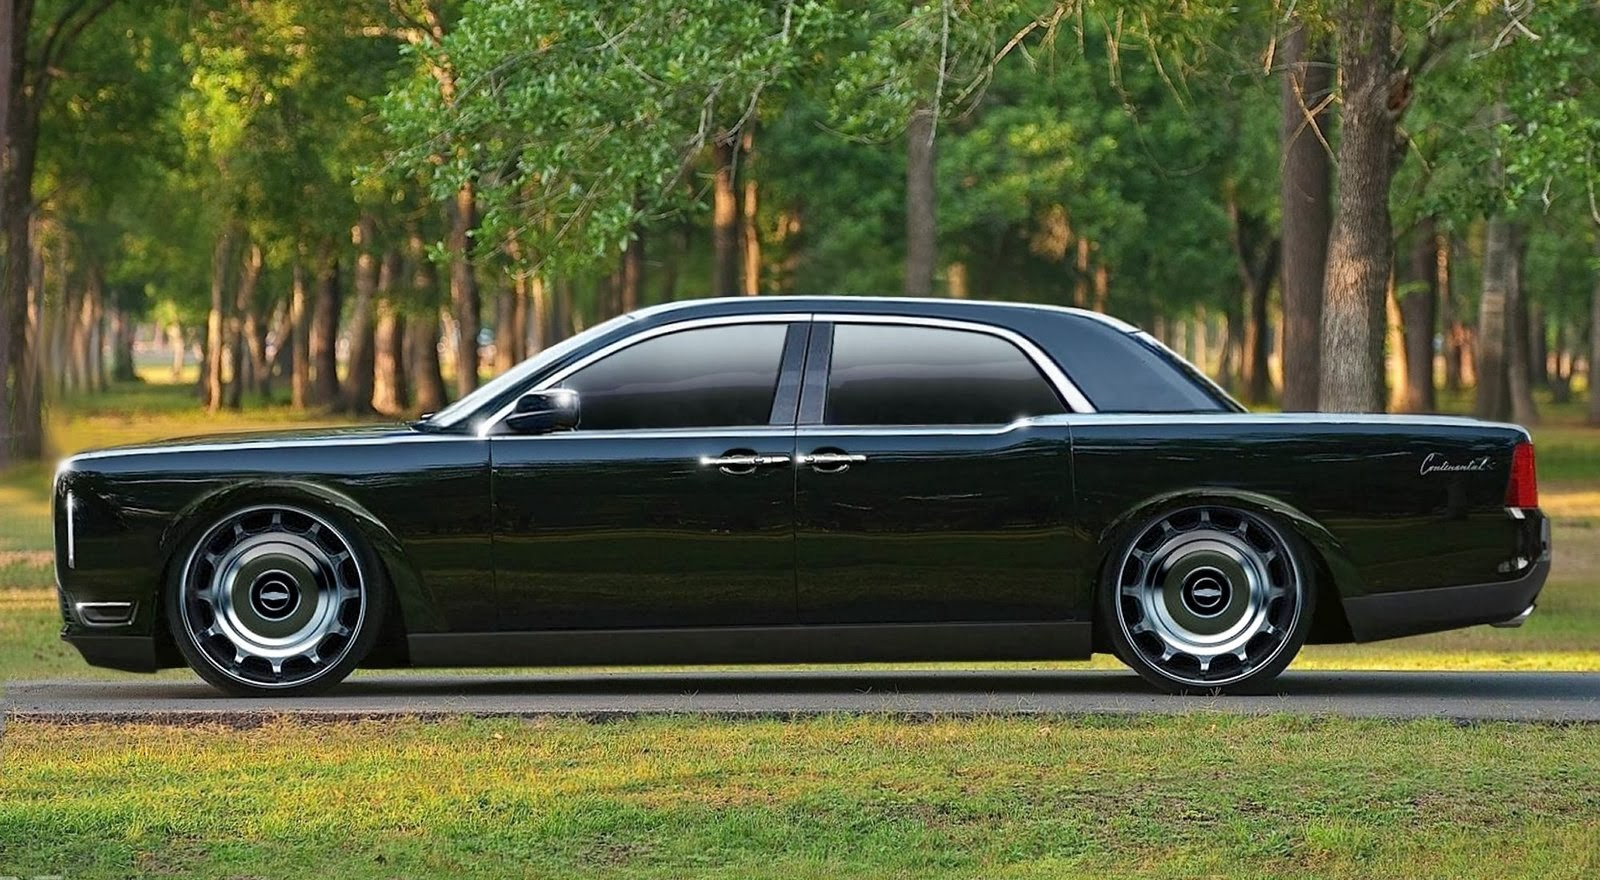 The Lincoln Continental Is A Series Of Luxury Cars Produced By Division American Automaker Ford Motor Company First Introduced In 1939 As